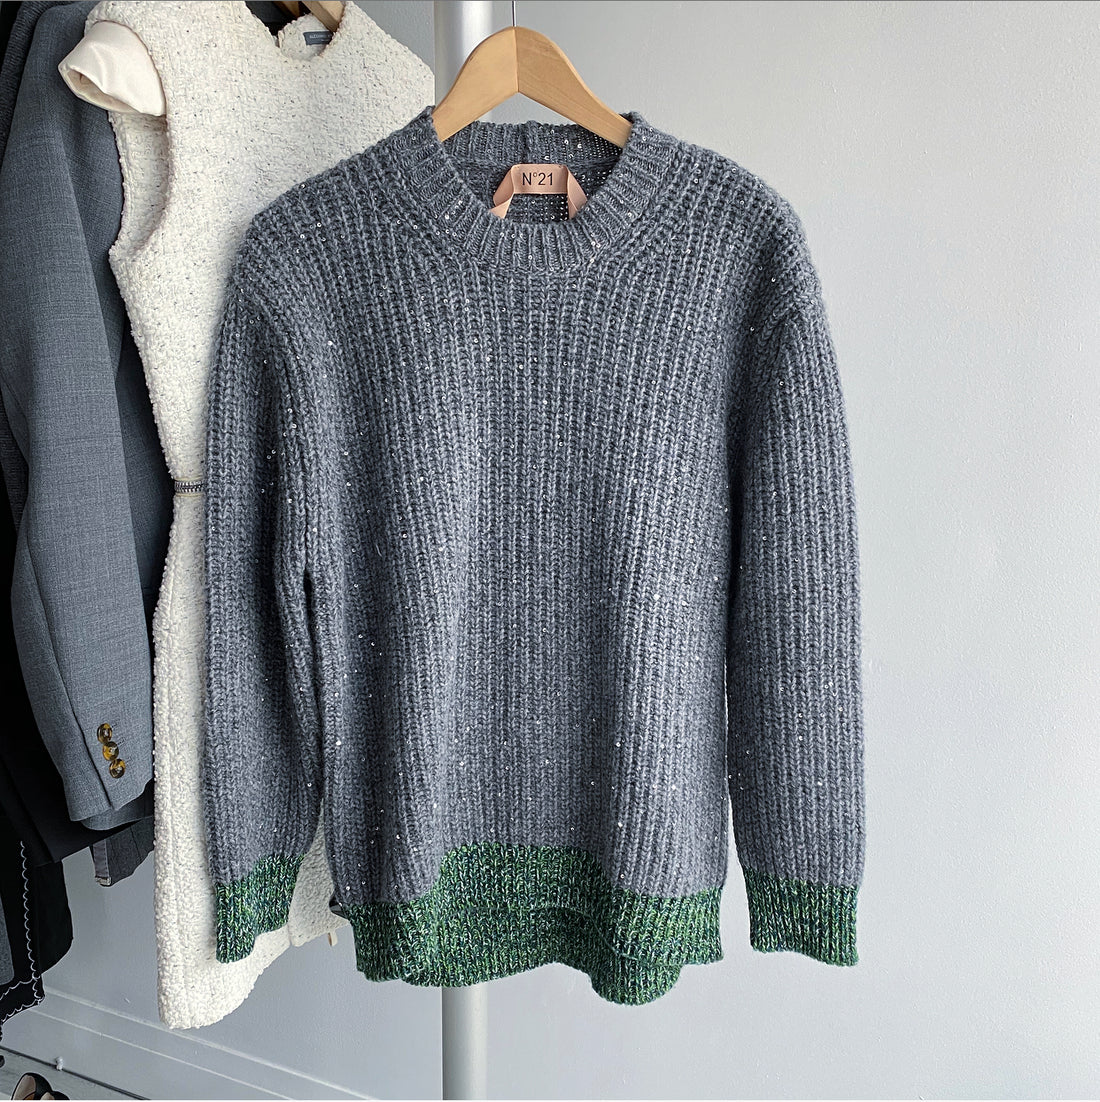 No 21 Grey Chunky Knit Sweater with Green Hem - S